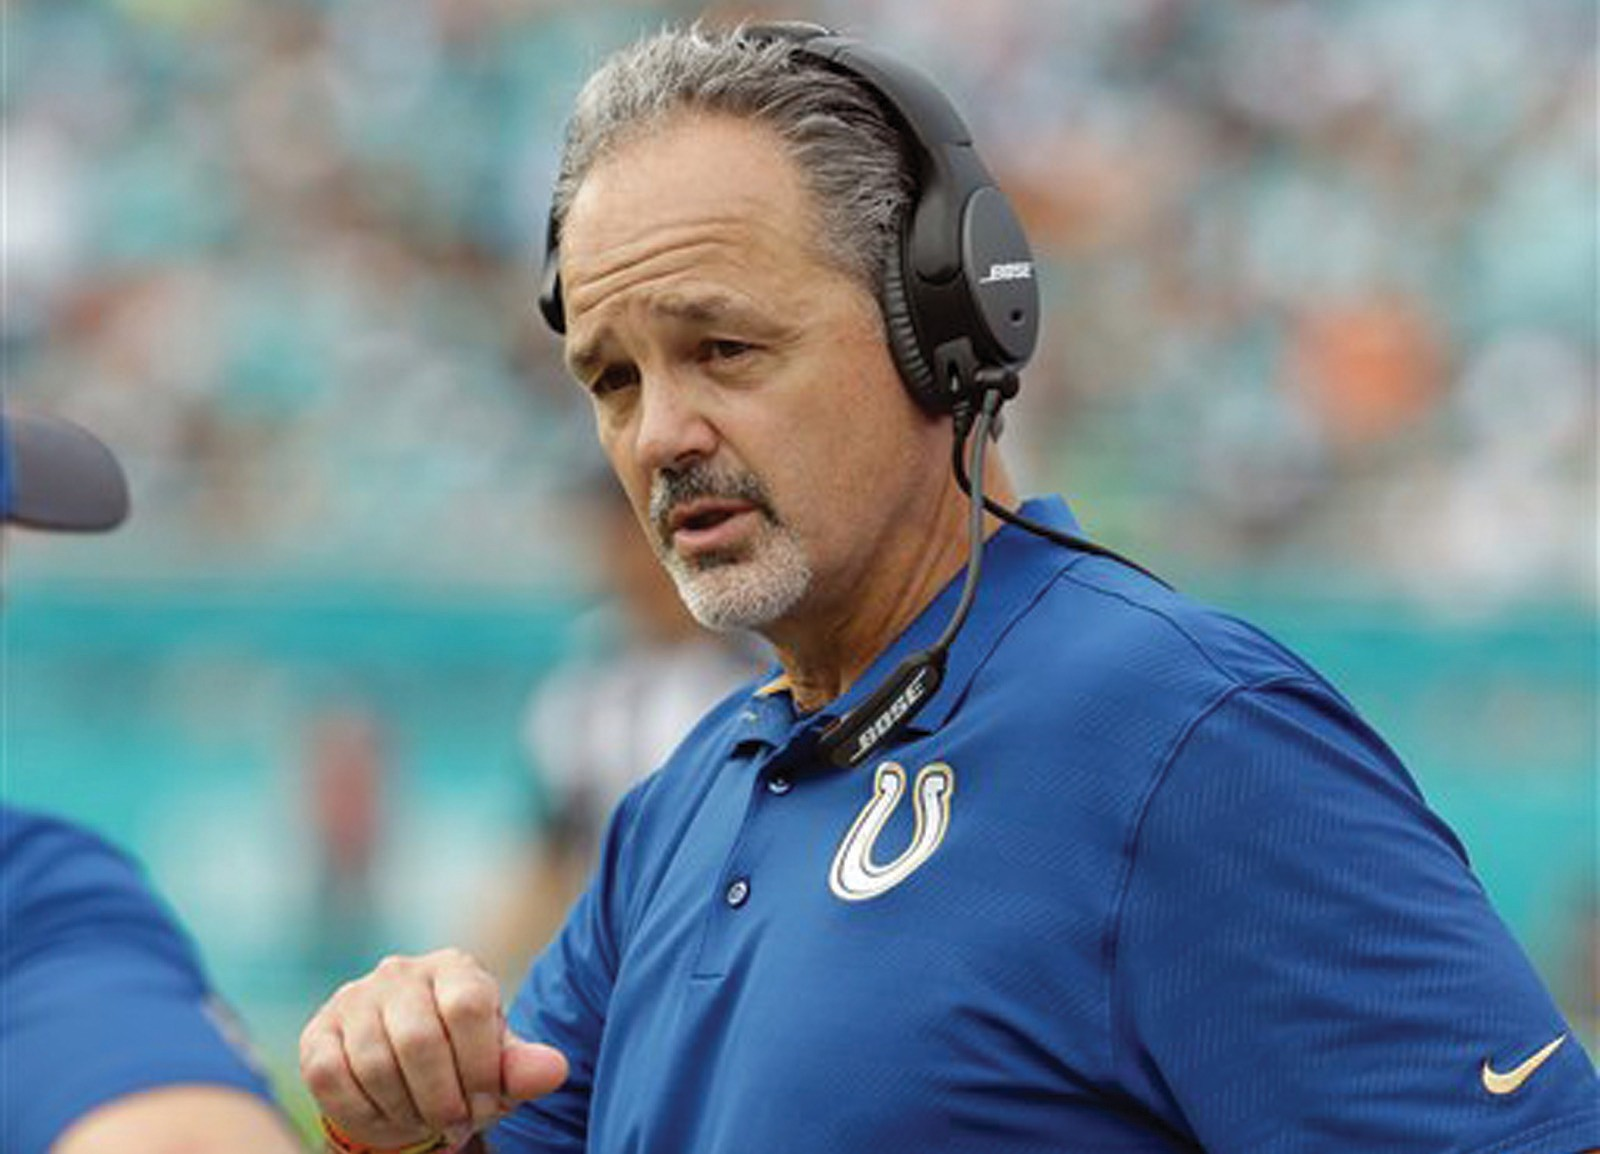 Indianapolis Colts head coach Chuck Pagano talks on the sidelines during the first half of a game against the Miami Dolphins in Miami Gardens, Fla.